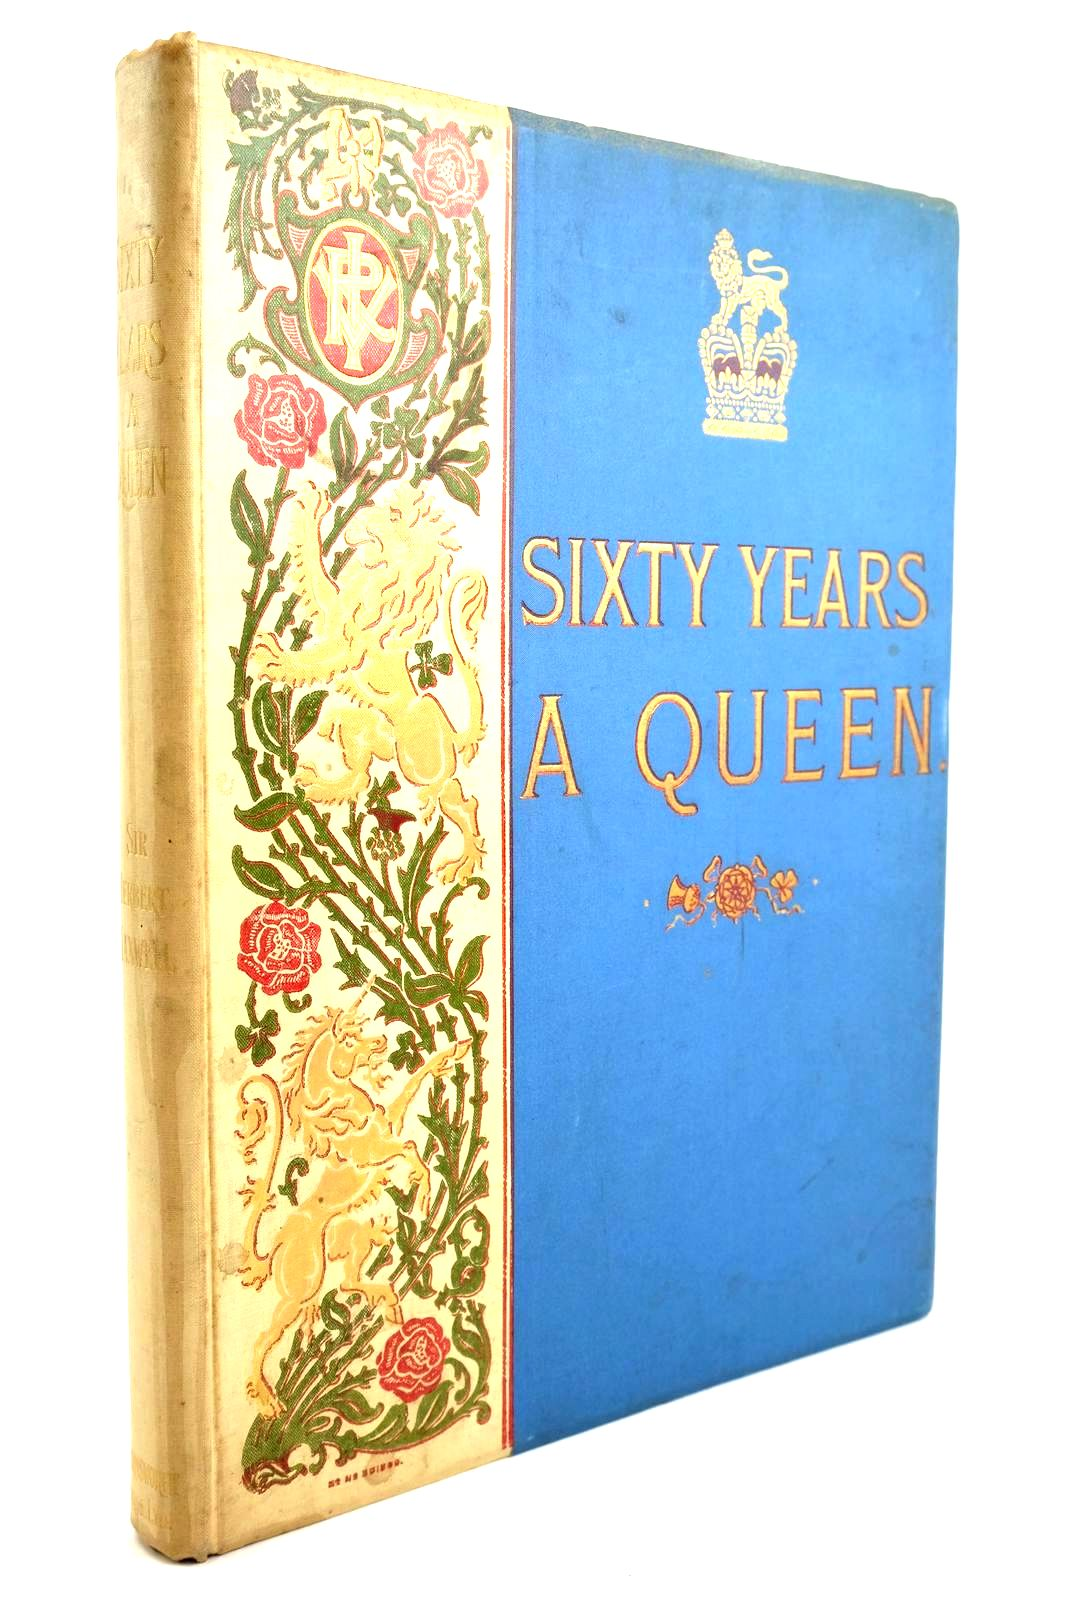 Photo of SIXTY YEARS A QUEEN written by Maxwell, Herbert published by Harmsworth Bros., Limited (STOCK CODE: 1320208)  for sale by Stella & Rose's Books